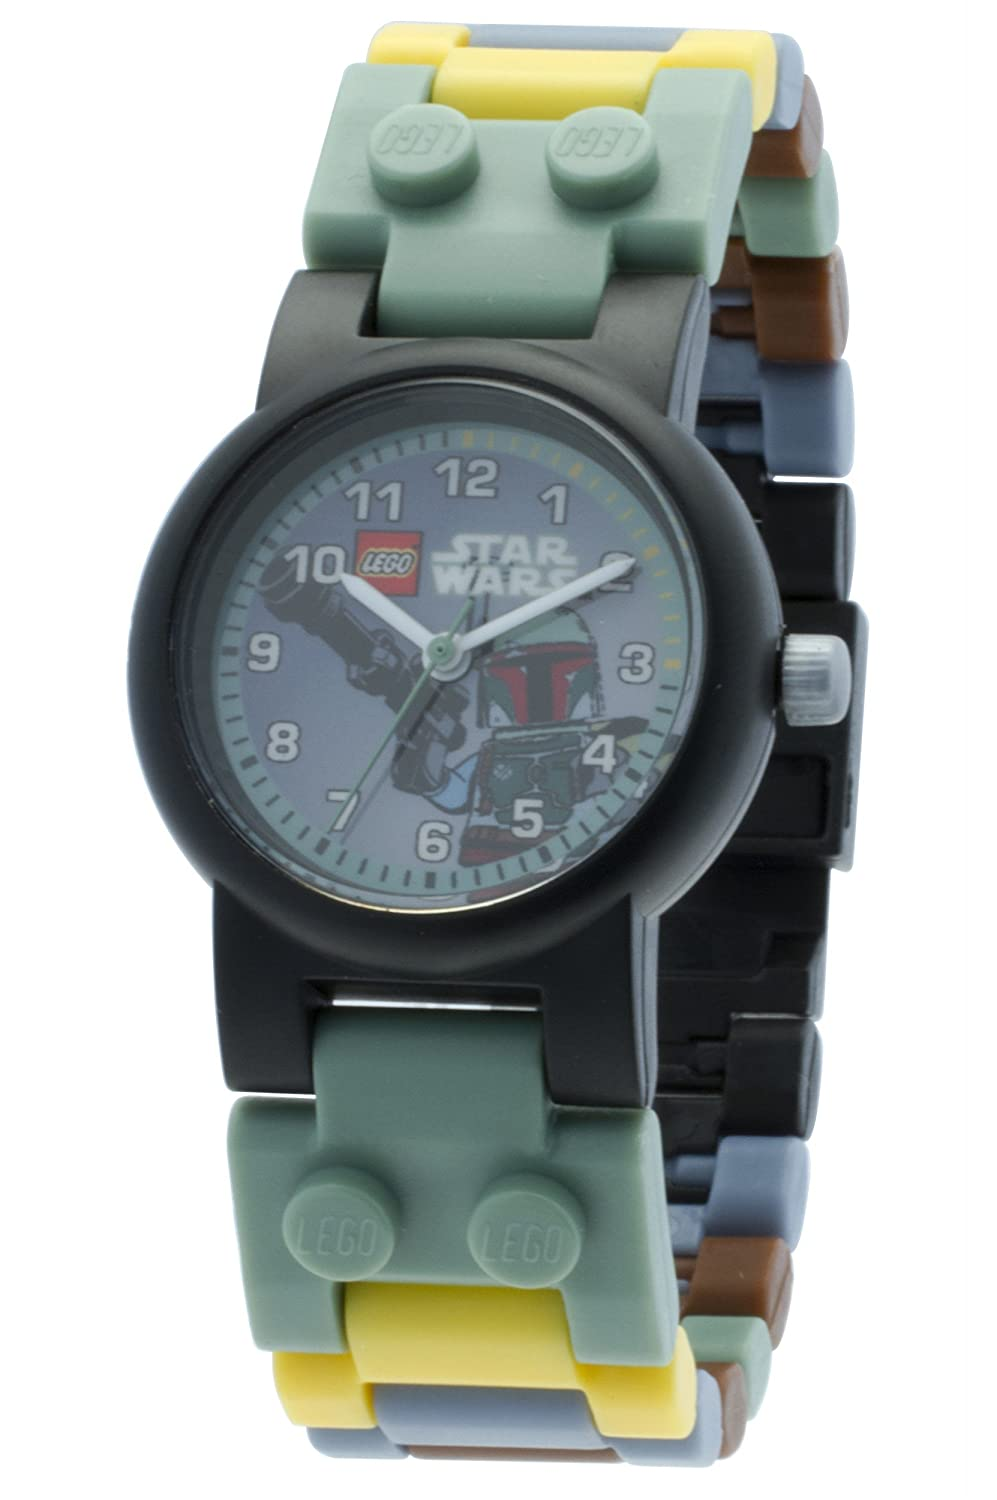 LEGO 8020363 Star Wars Boba Fett Kids Buildable Watch with Link Bracelet and Minifigure | green/gray | plastic | 28mm case diameter| analog quartz | boy girl | official